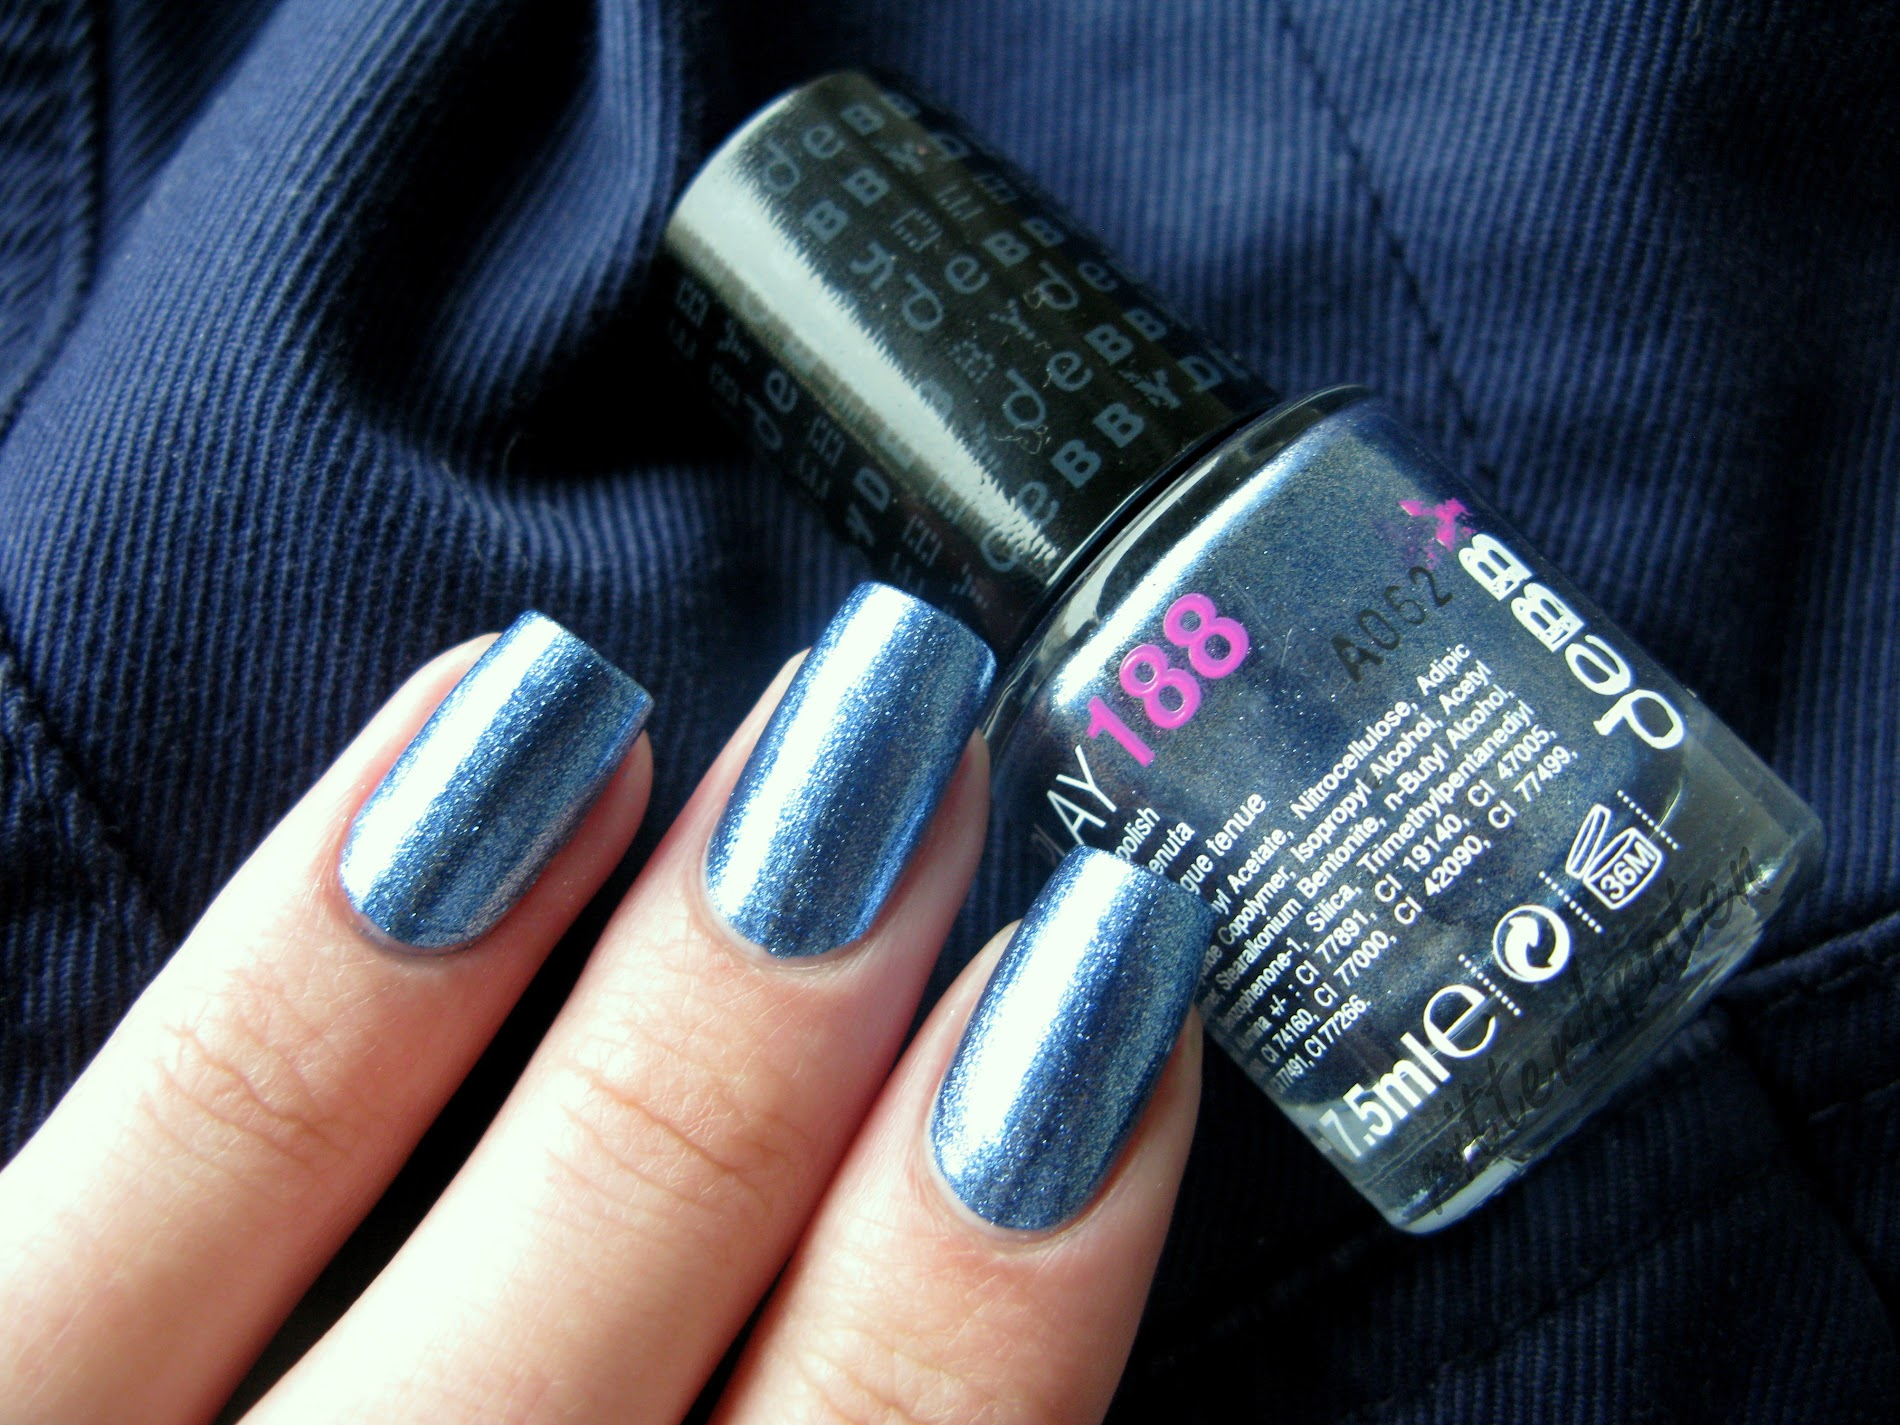 Debby ColorPlay 188 smalto vernis nail polish